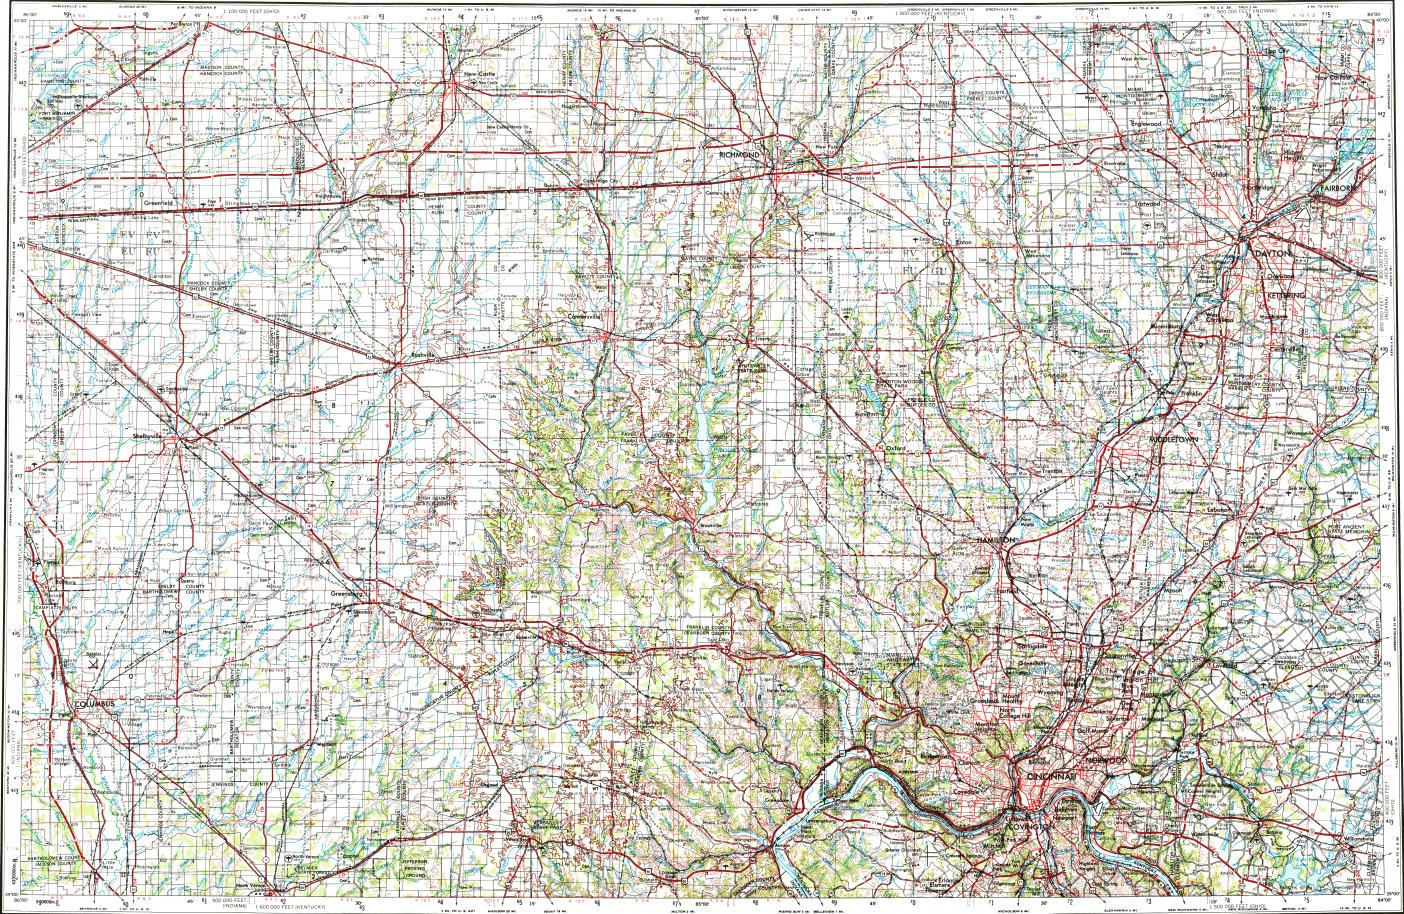 Download Topographic Map In Area Of Cincinnati Dayton Hamilton